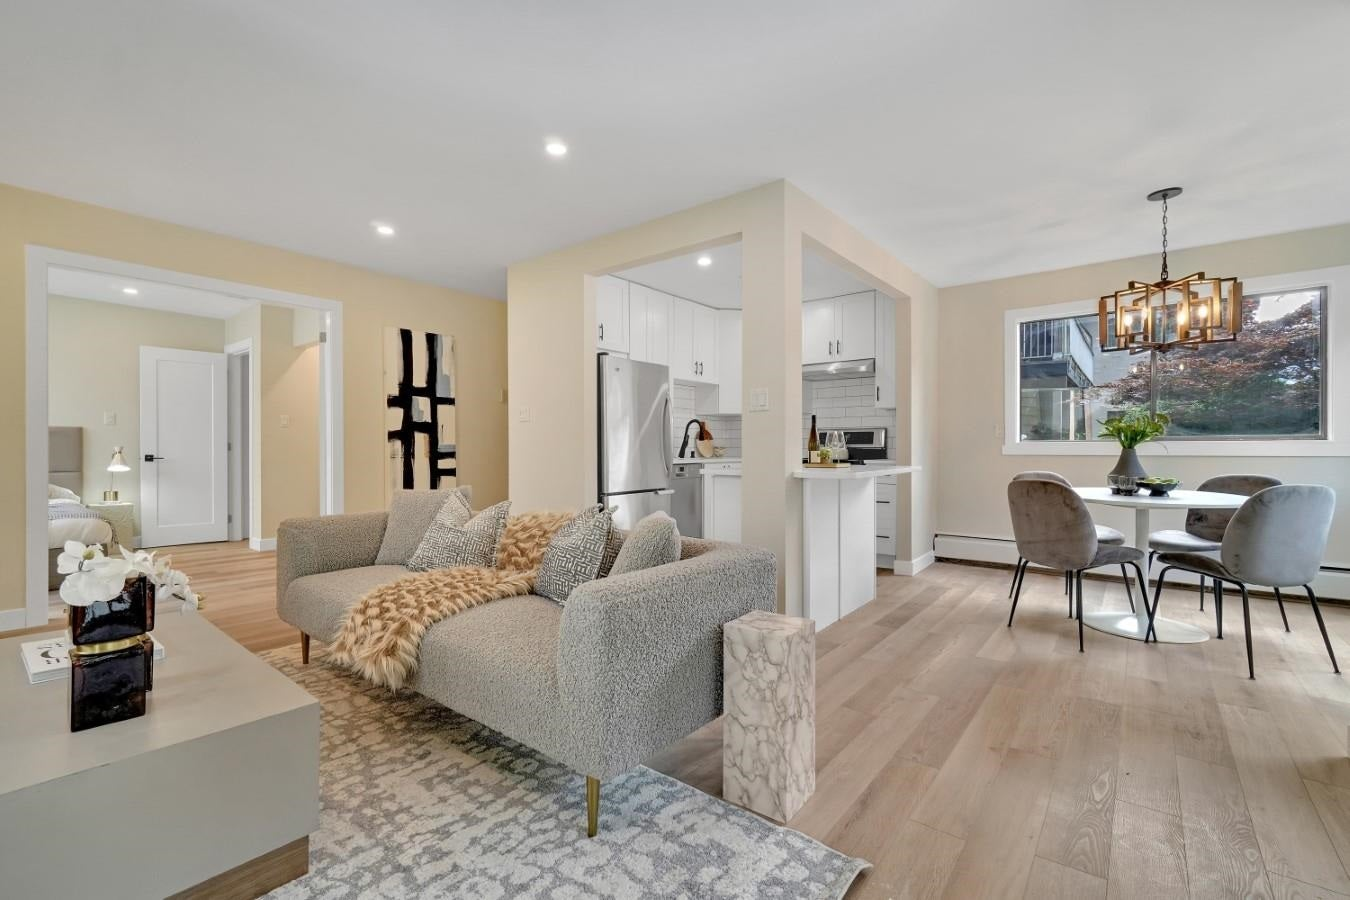 206 330 W 2ND STREET - Lower Lonsdale Apartment/Condo for sale, 2 Bedrooms (R2604160) - #6